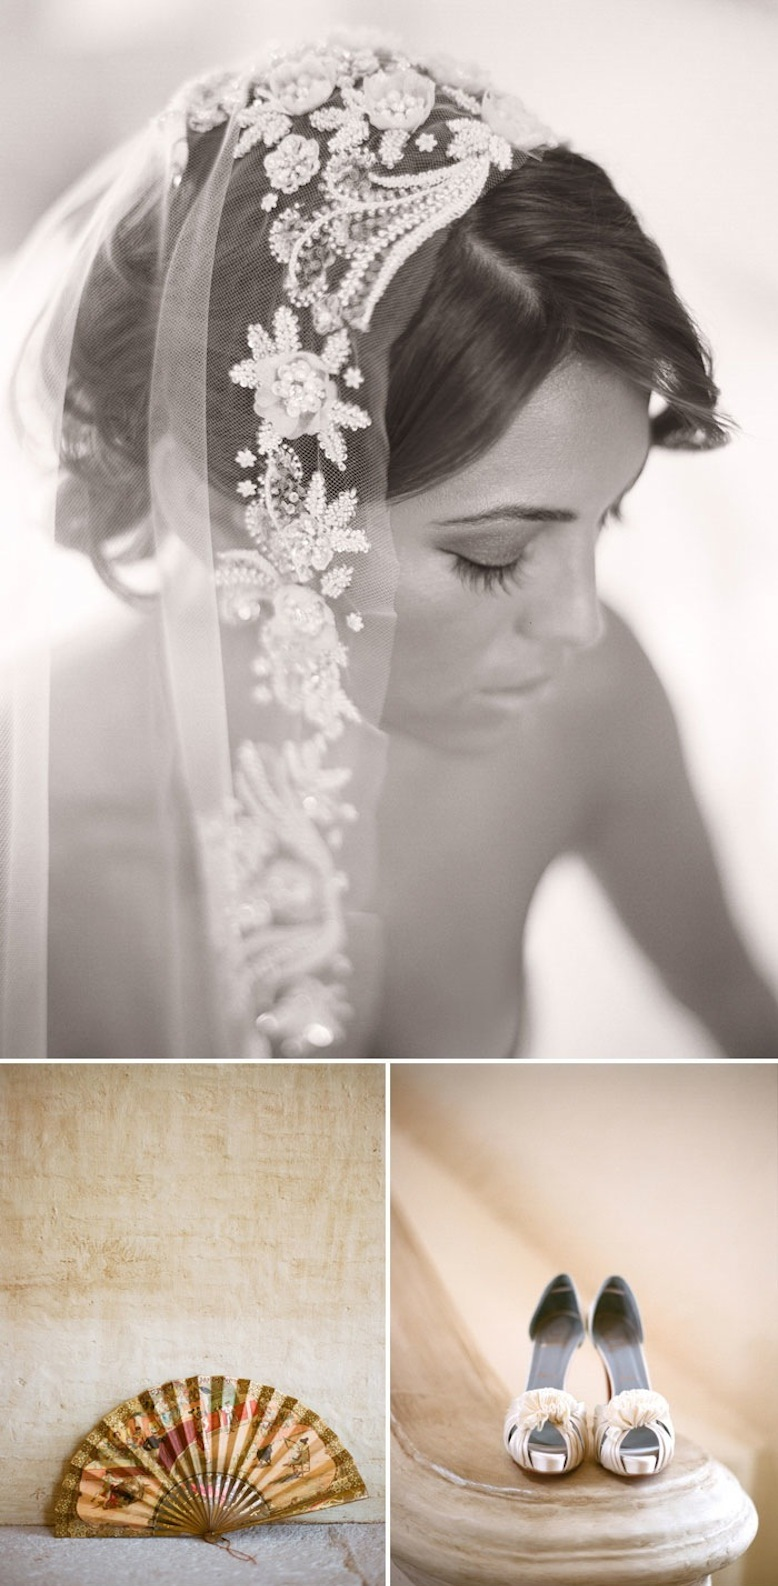 Bright-destination-wedding-in-mexico-by-aaron-delesie-bridal-details-and-accessories.full